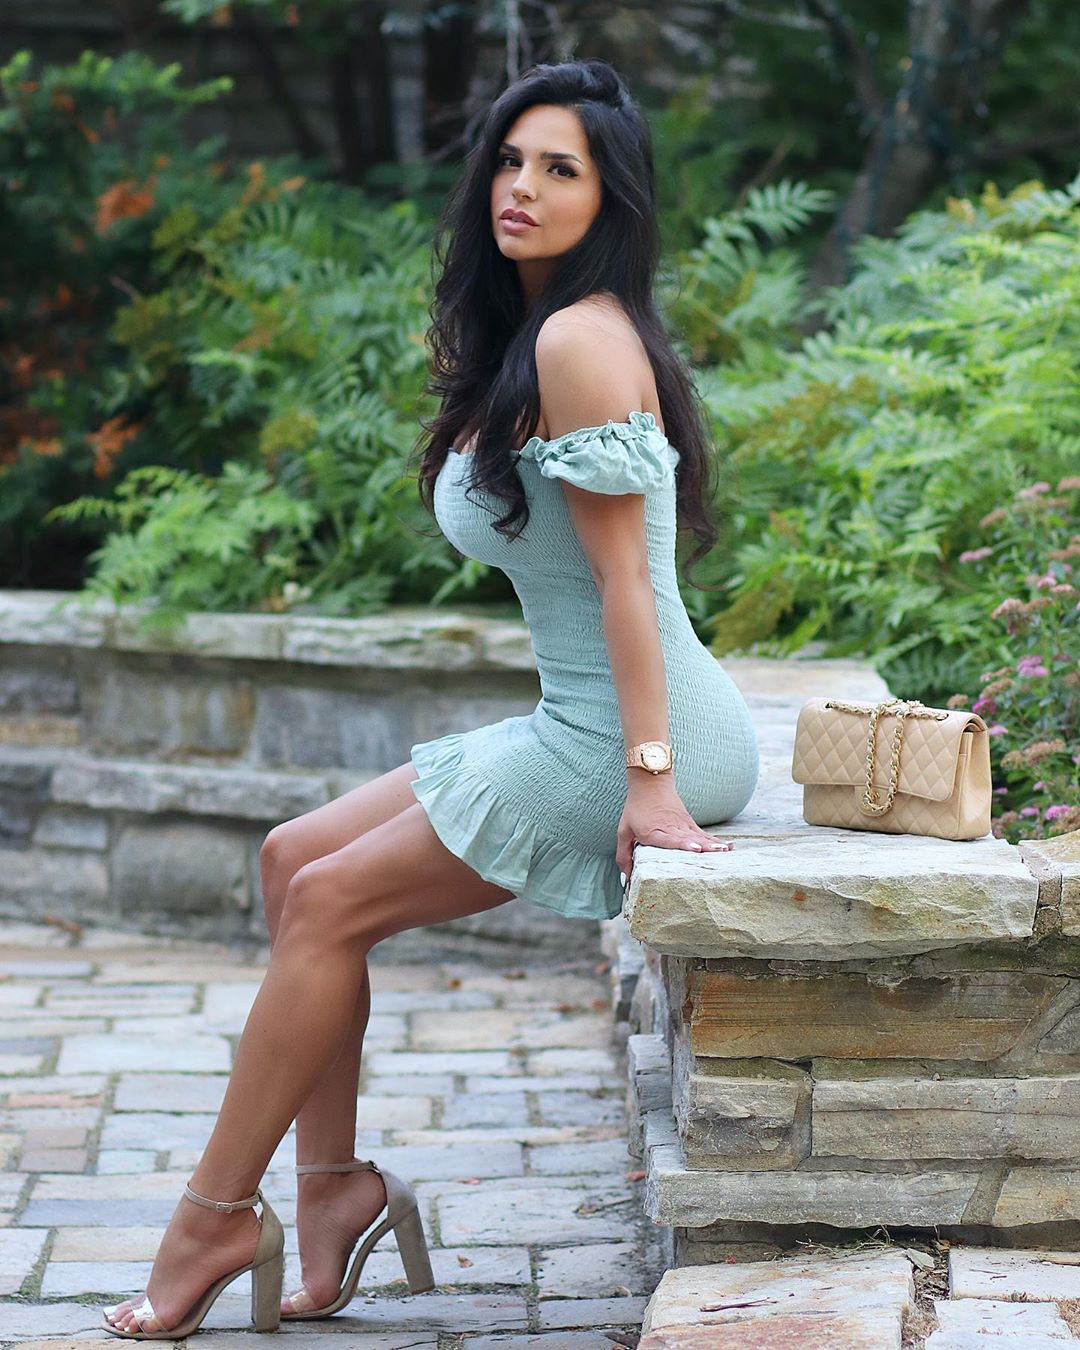 Shadi Y Cair photoshoot poses, girls instgram photography, legs picture